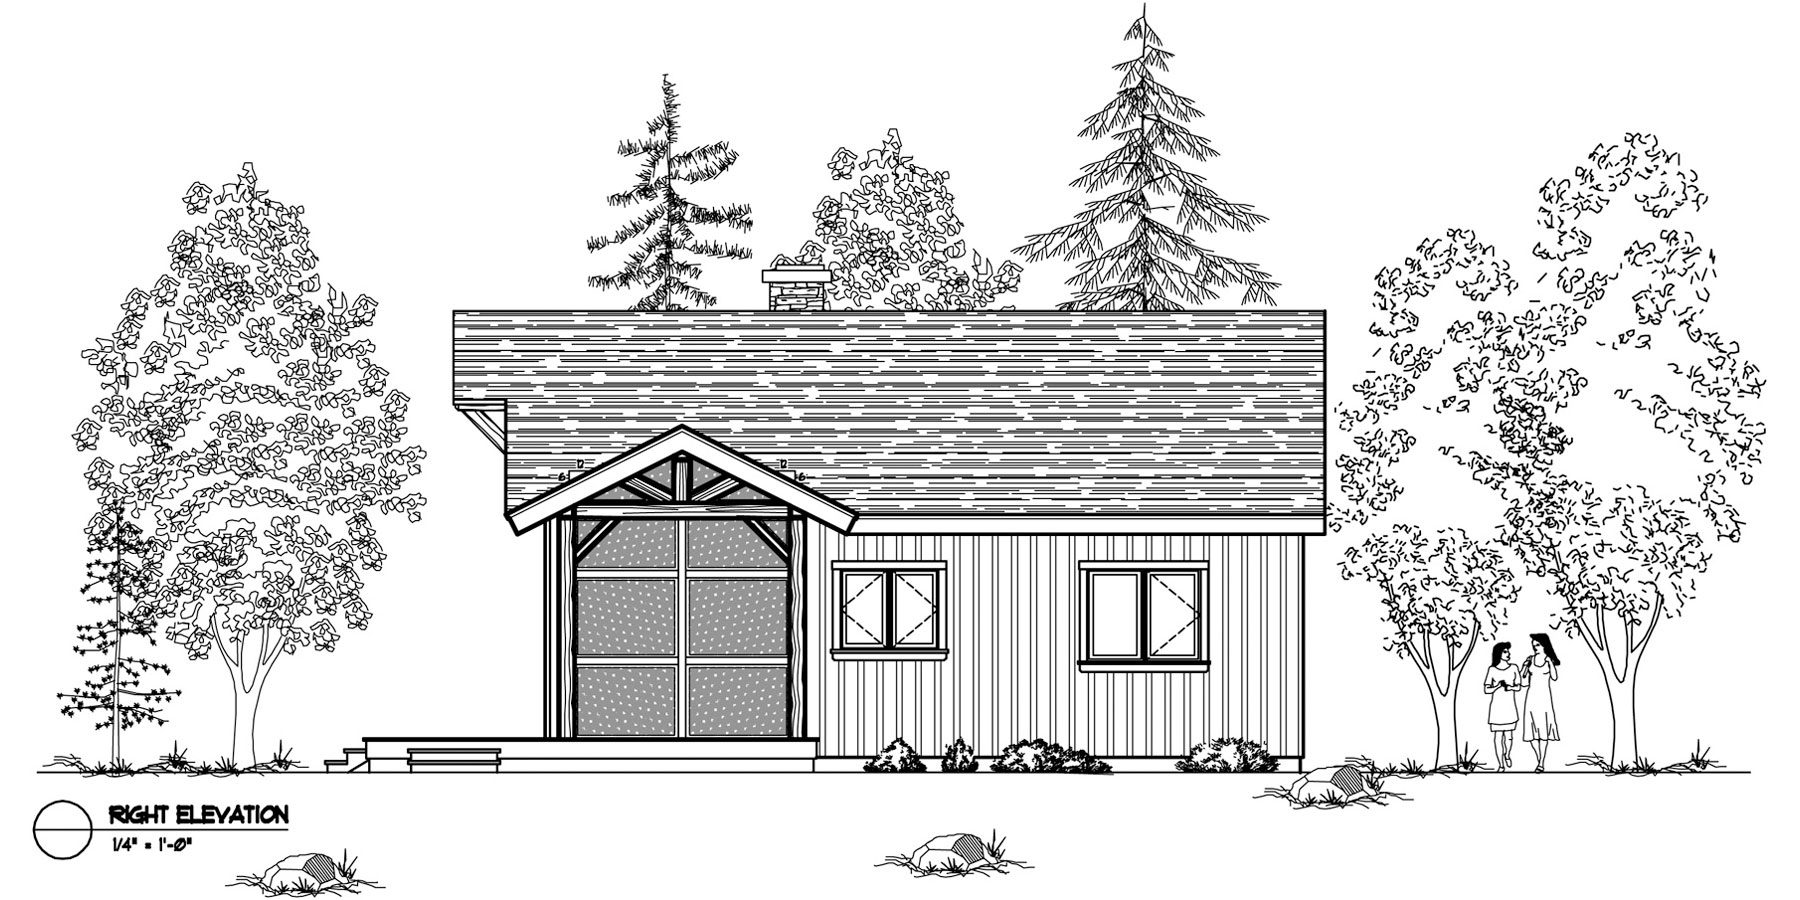 Normerica Timber Frames, House Plan, The Nipissing 3542, Right Elevation